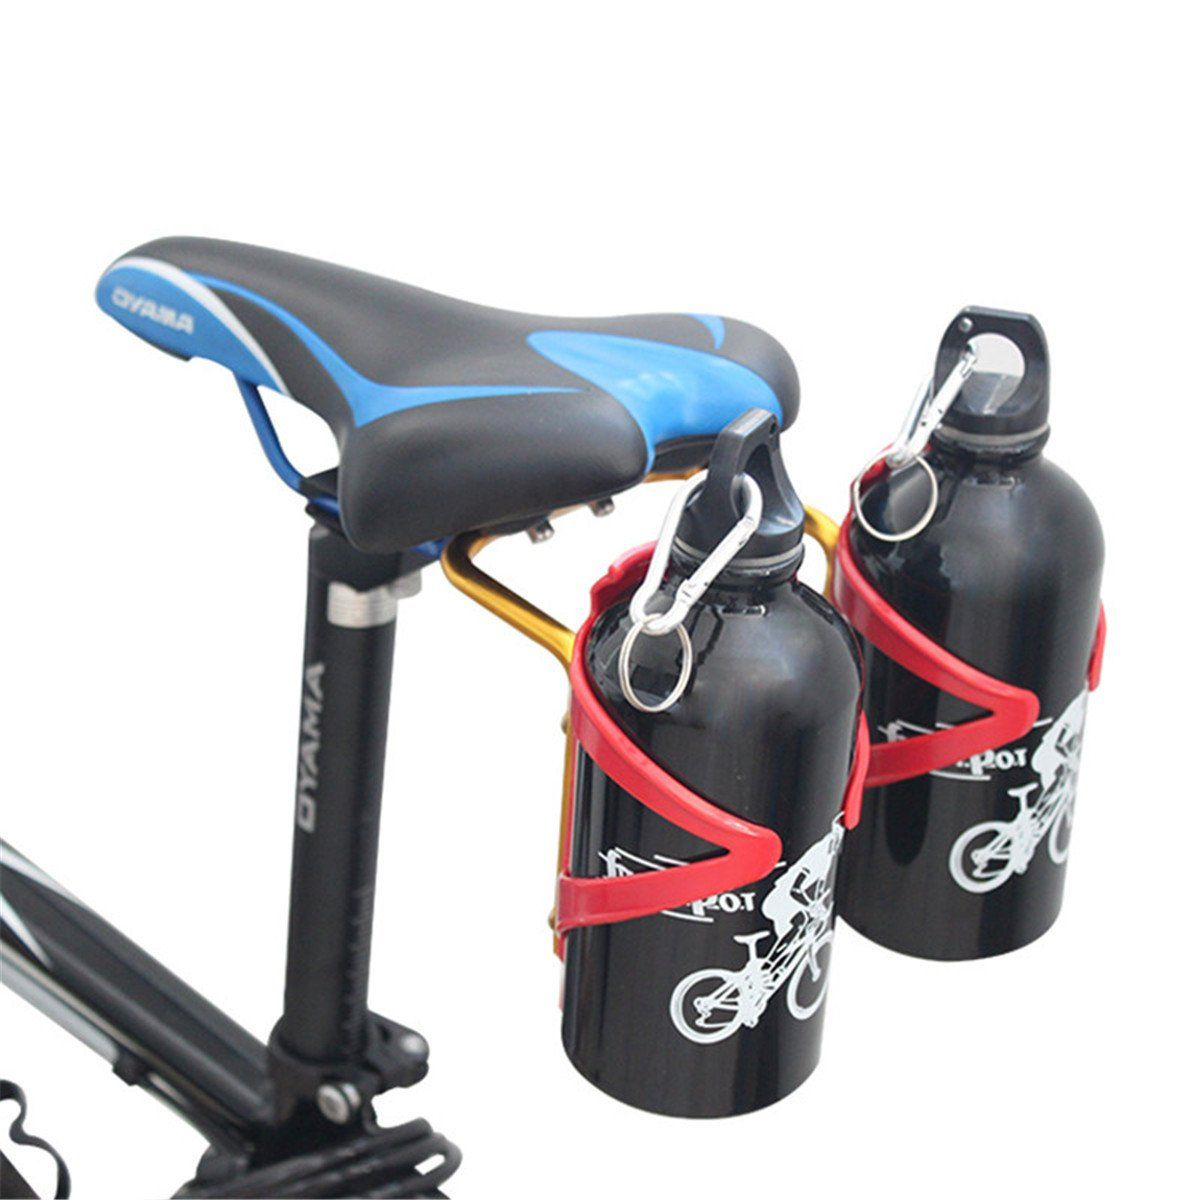 Aluminum Water riding mtb Bottle Holder Bicycle Drink Rack Useful Accessories D